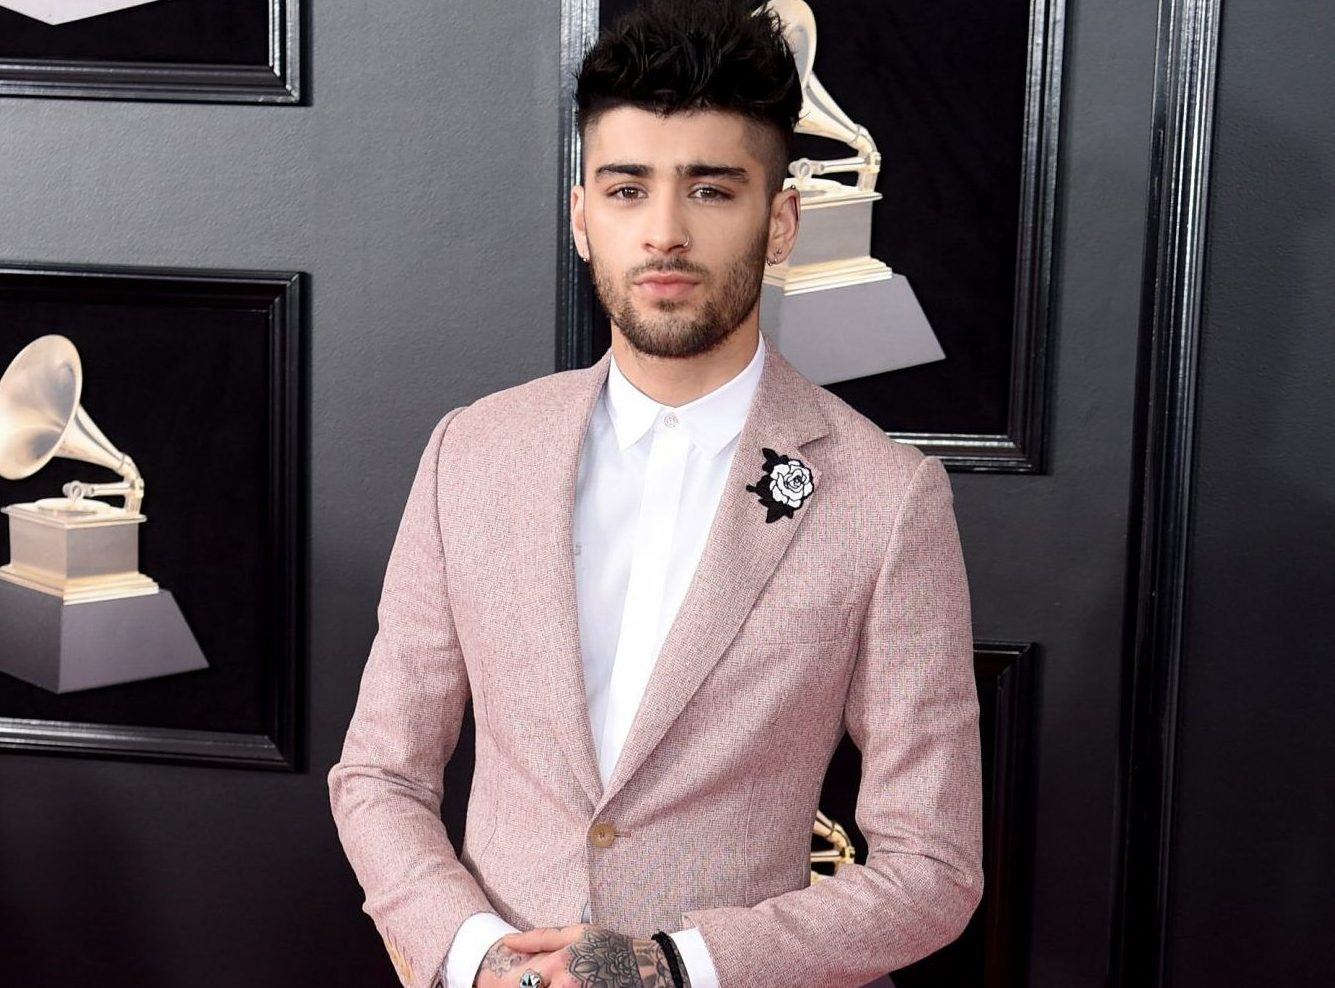 Zayn Malik at Grammys